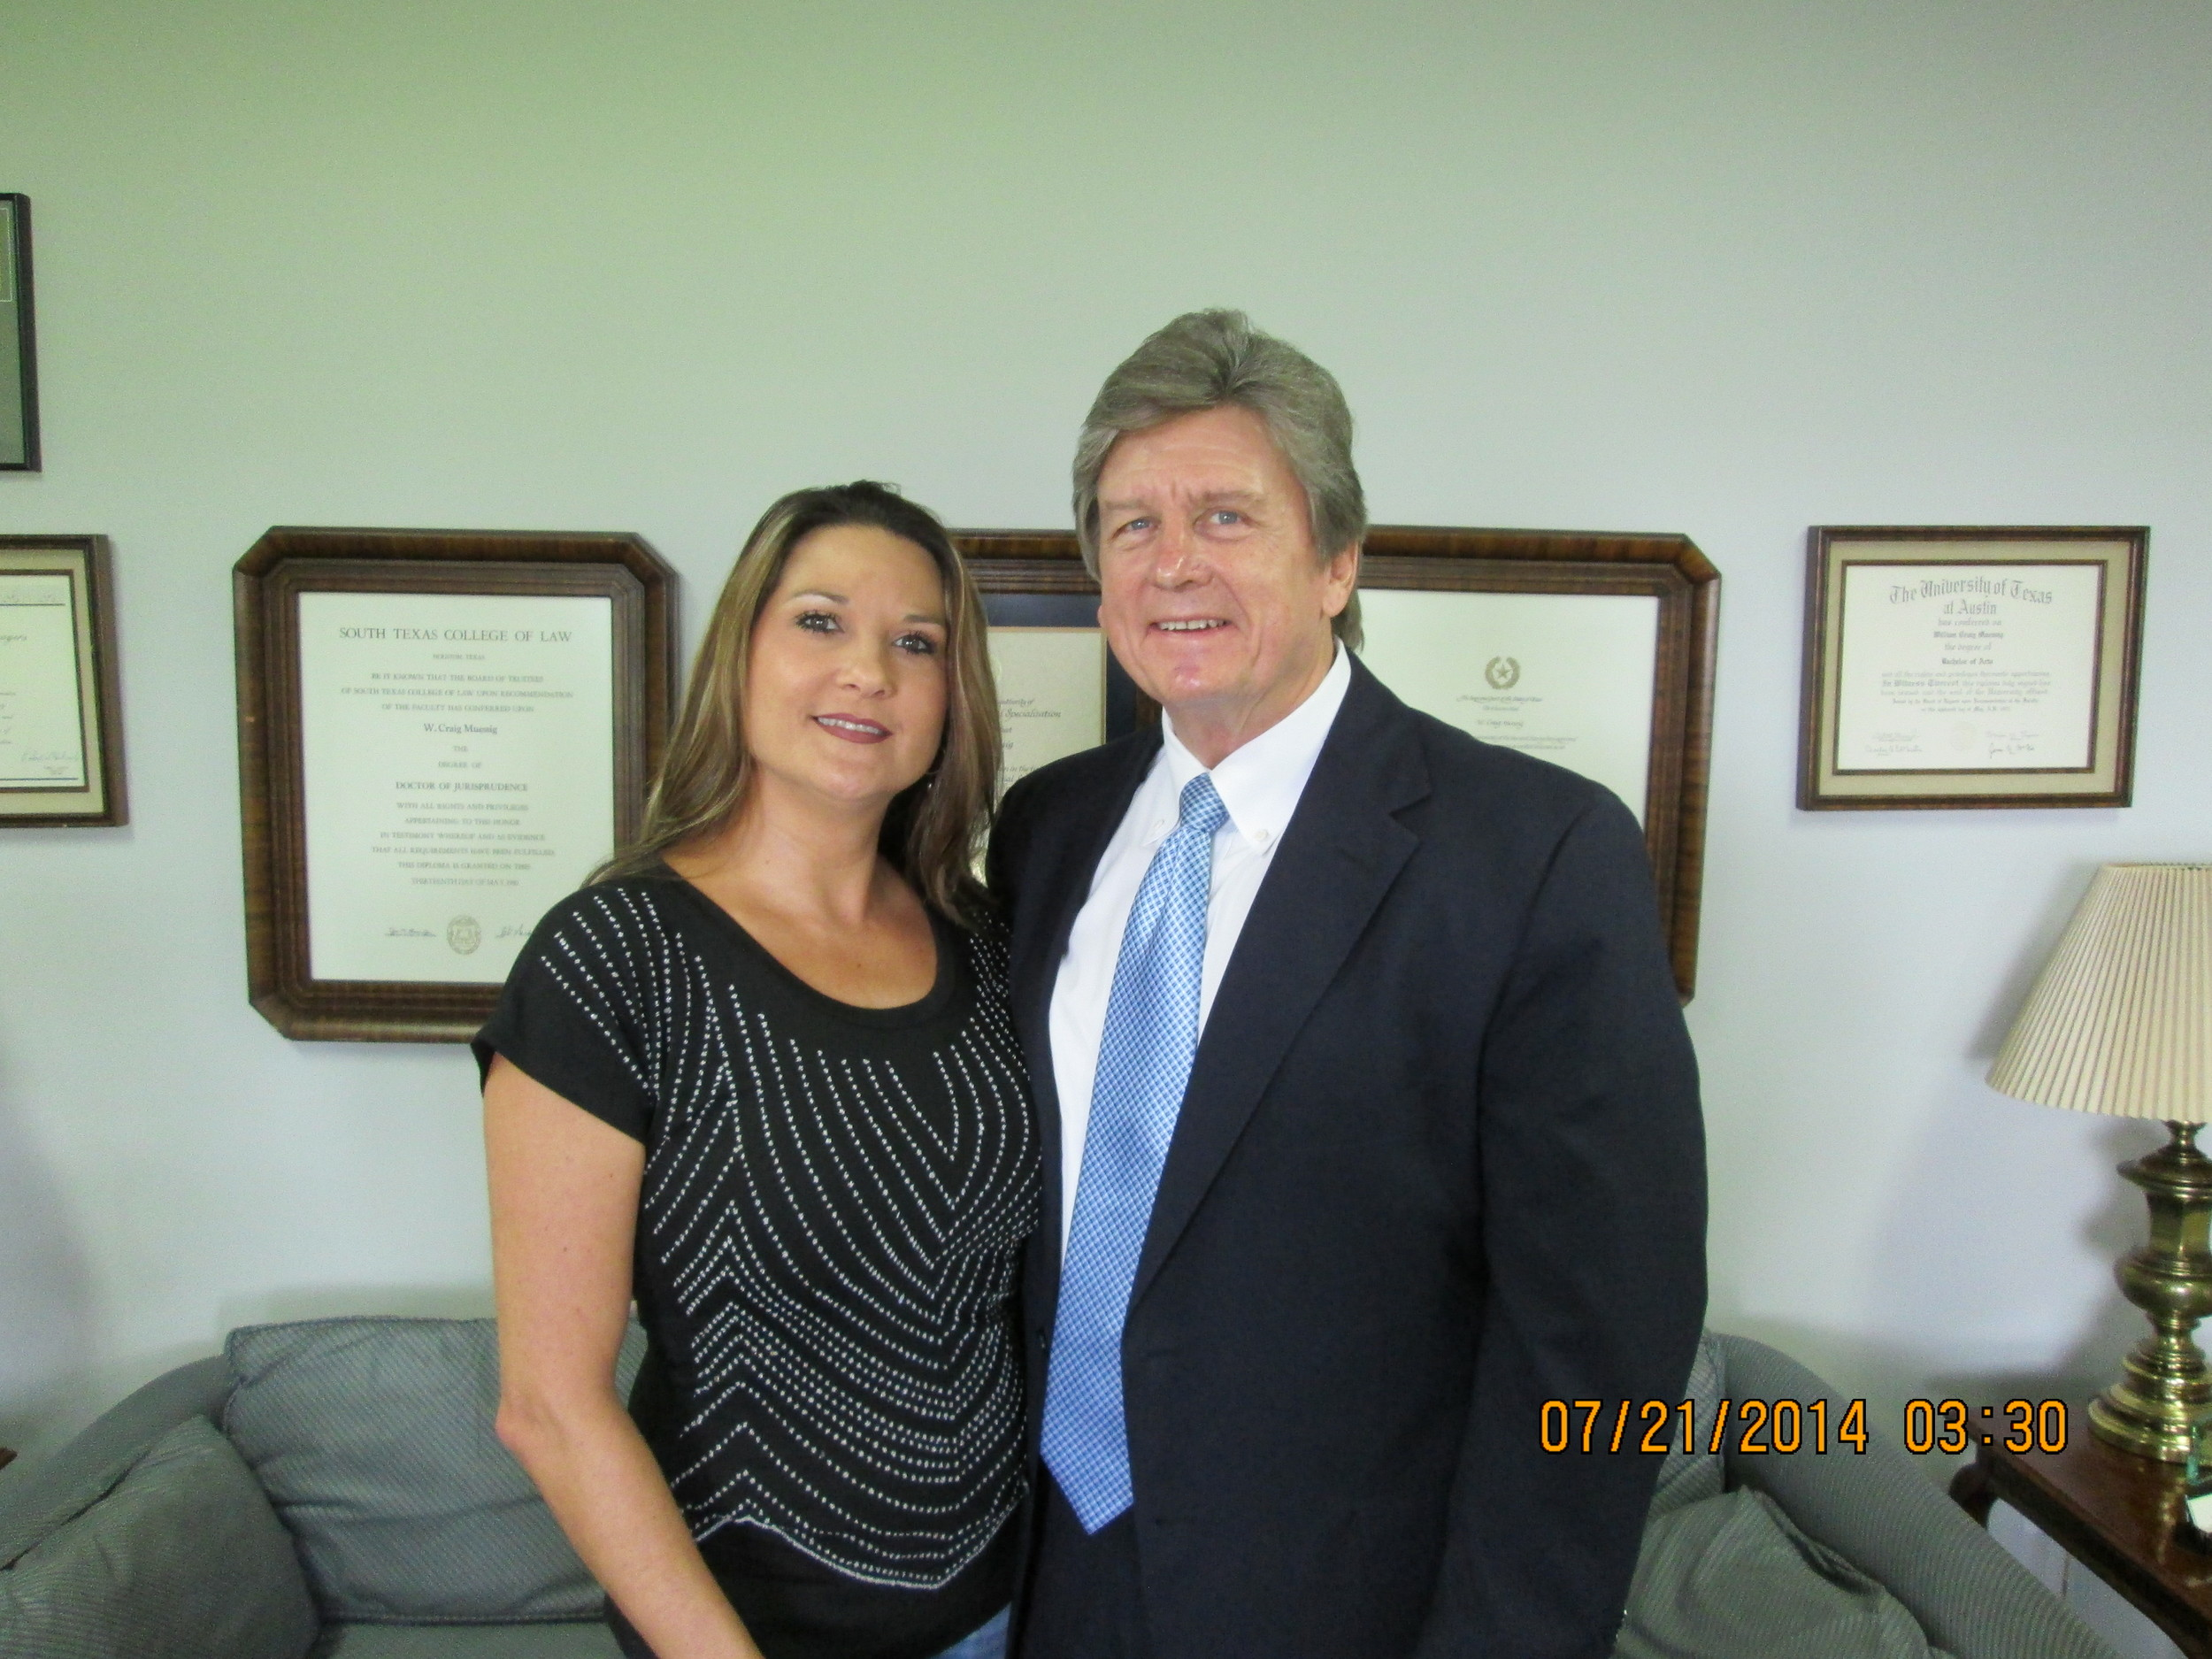 Pictured above is Baytown residentKaren Tiemann, who recently received a $46,500settlement from a Highway 146auto accident in which she sustained a concussion. Muessigalso successfully represented her in a 1990 18-wheeler accident in Mont Belvieu.